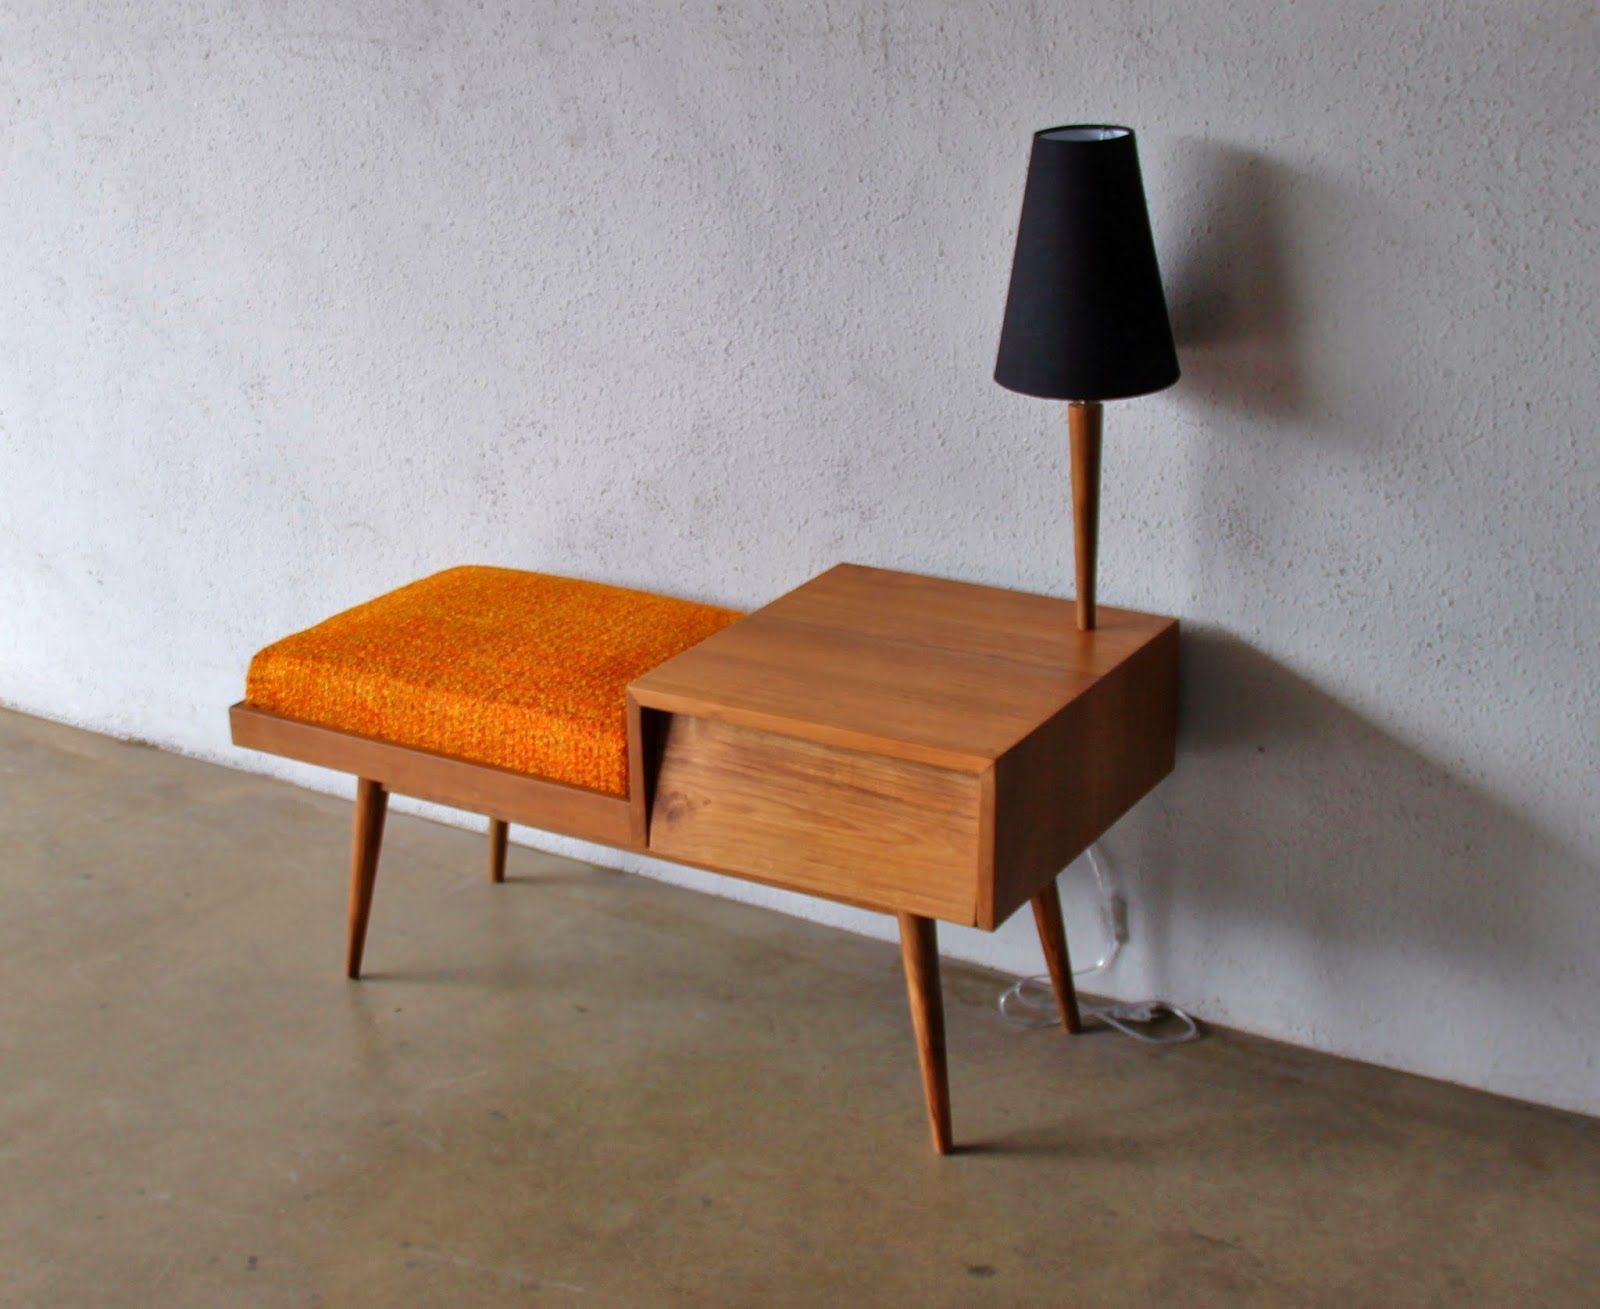 Our Danish Modern 2 Piece Sectional Couch Had An End Table